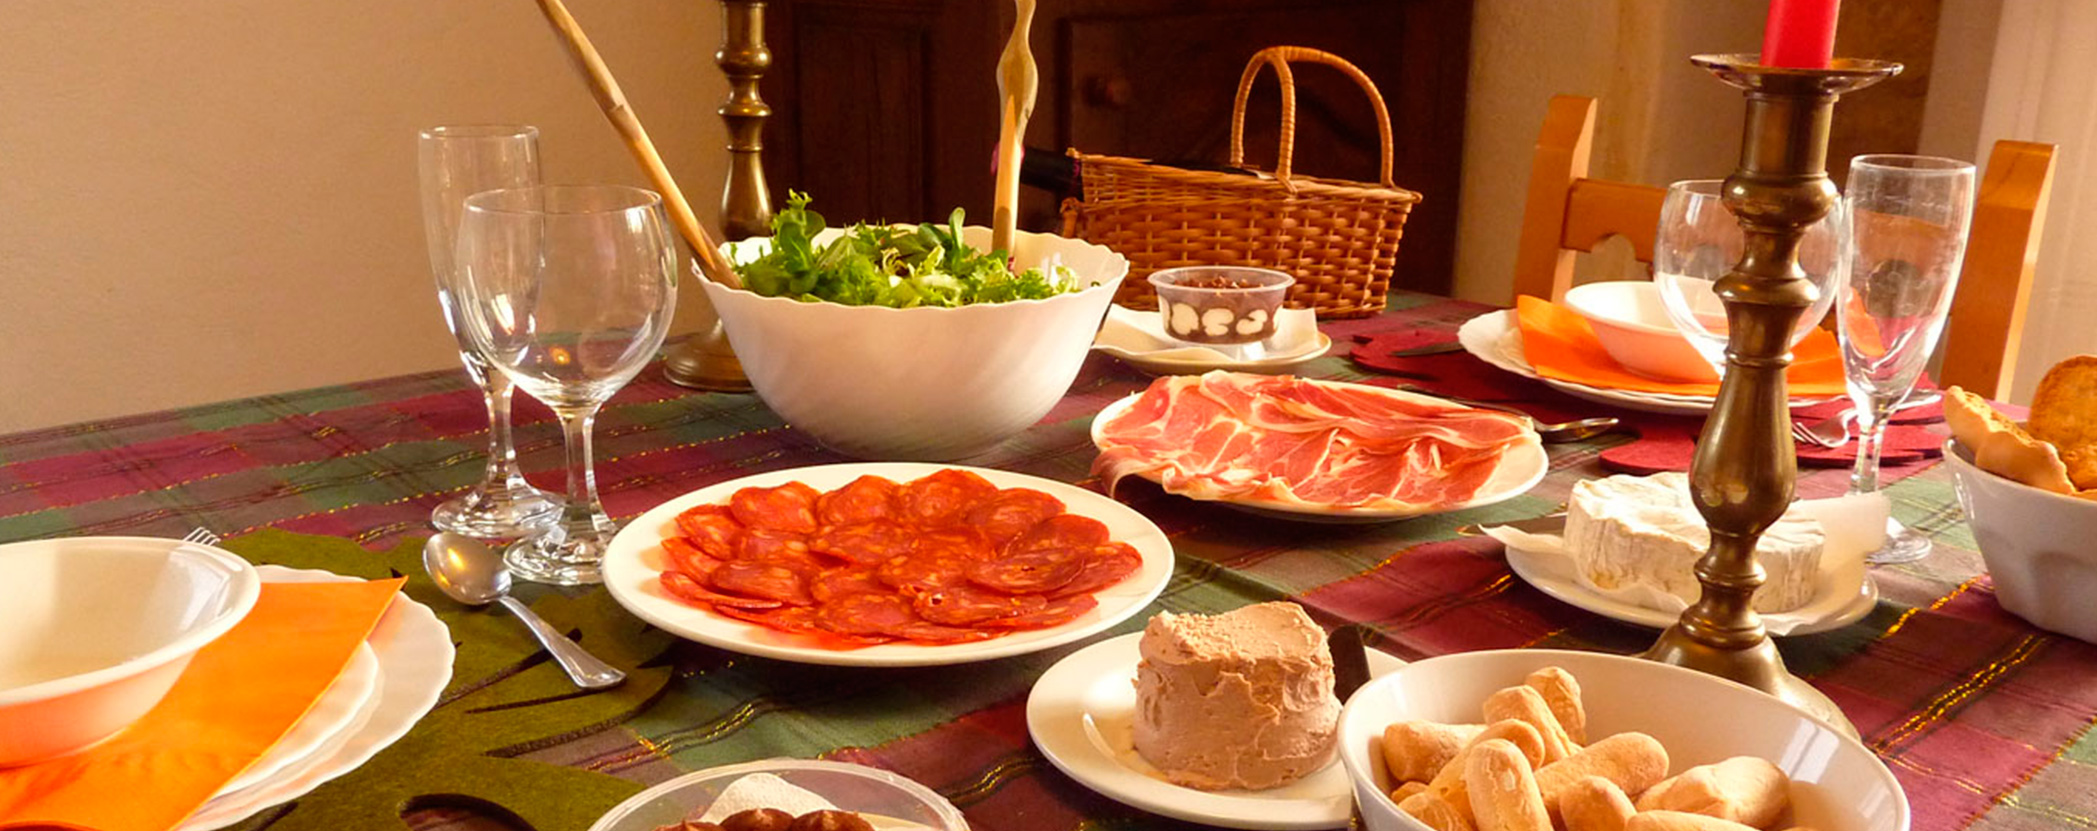 Cold dinner for two 12 50 per person casa rural atostarra - Cena romantica a casa ...